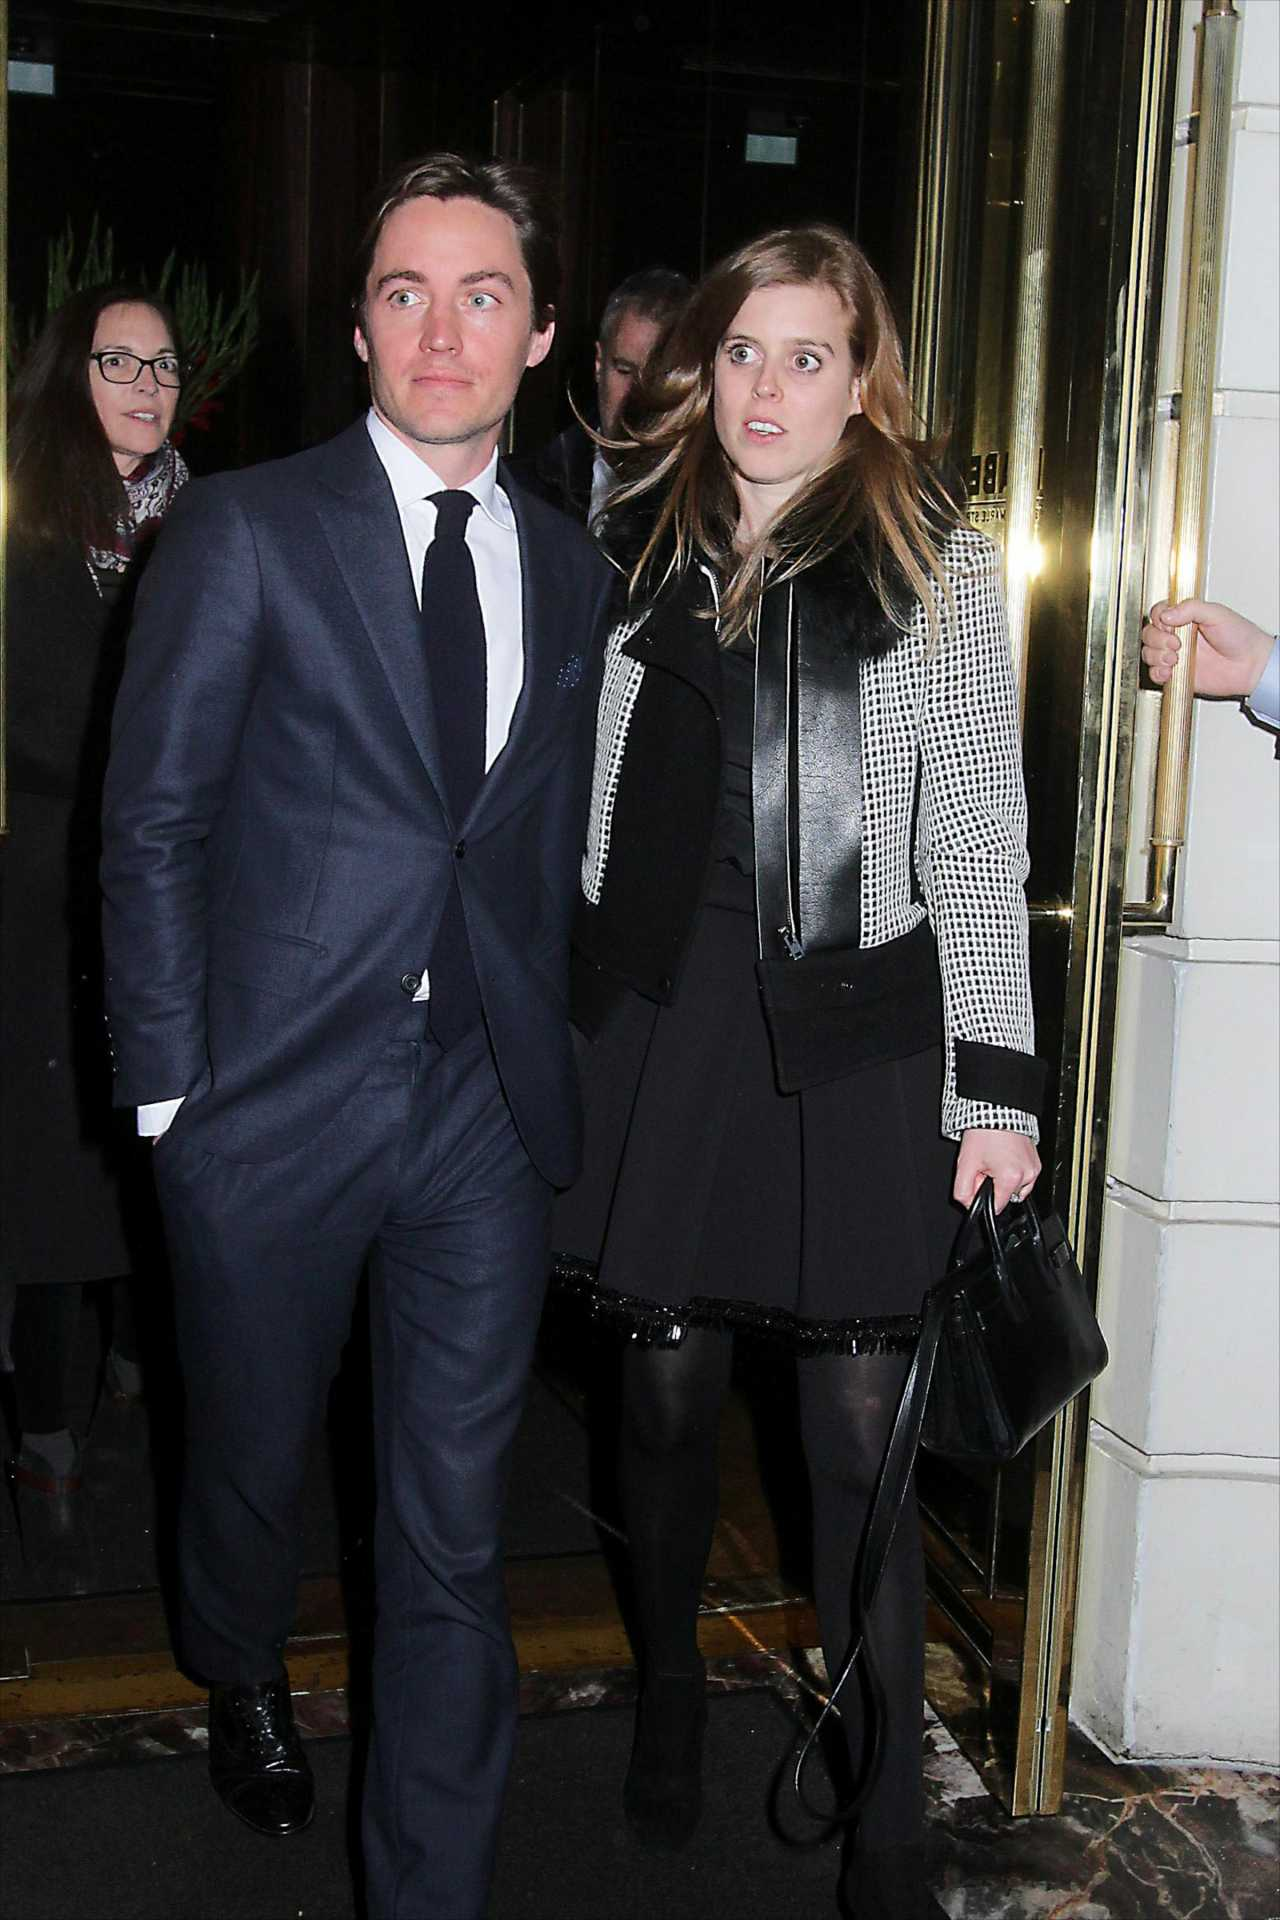 Princess Beatrice of York At Isabel restaurant in Mayfair in London